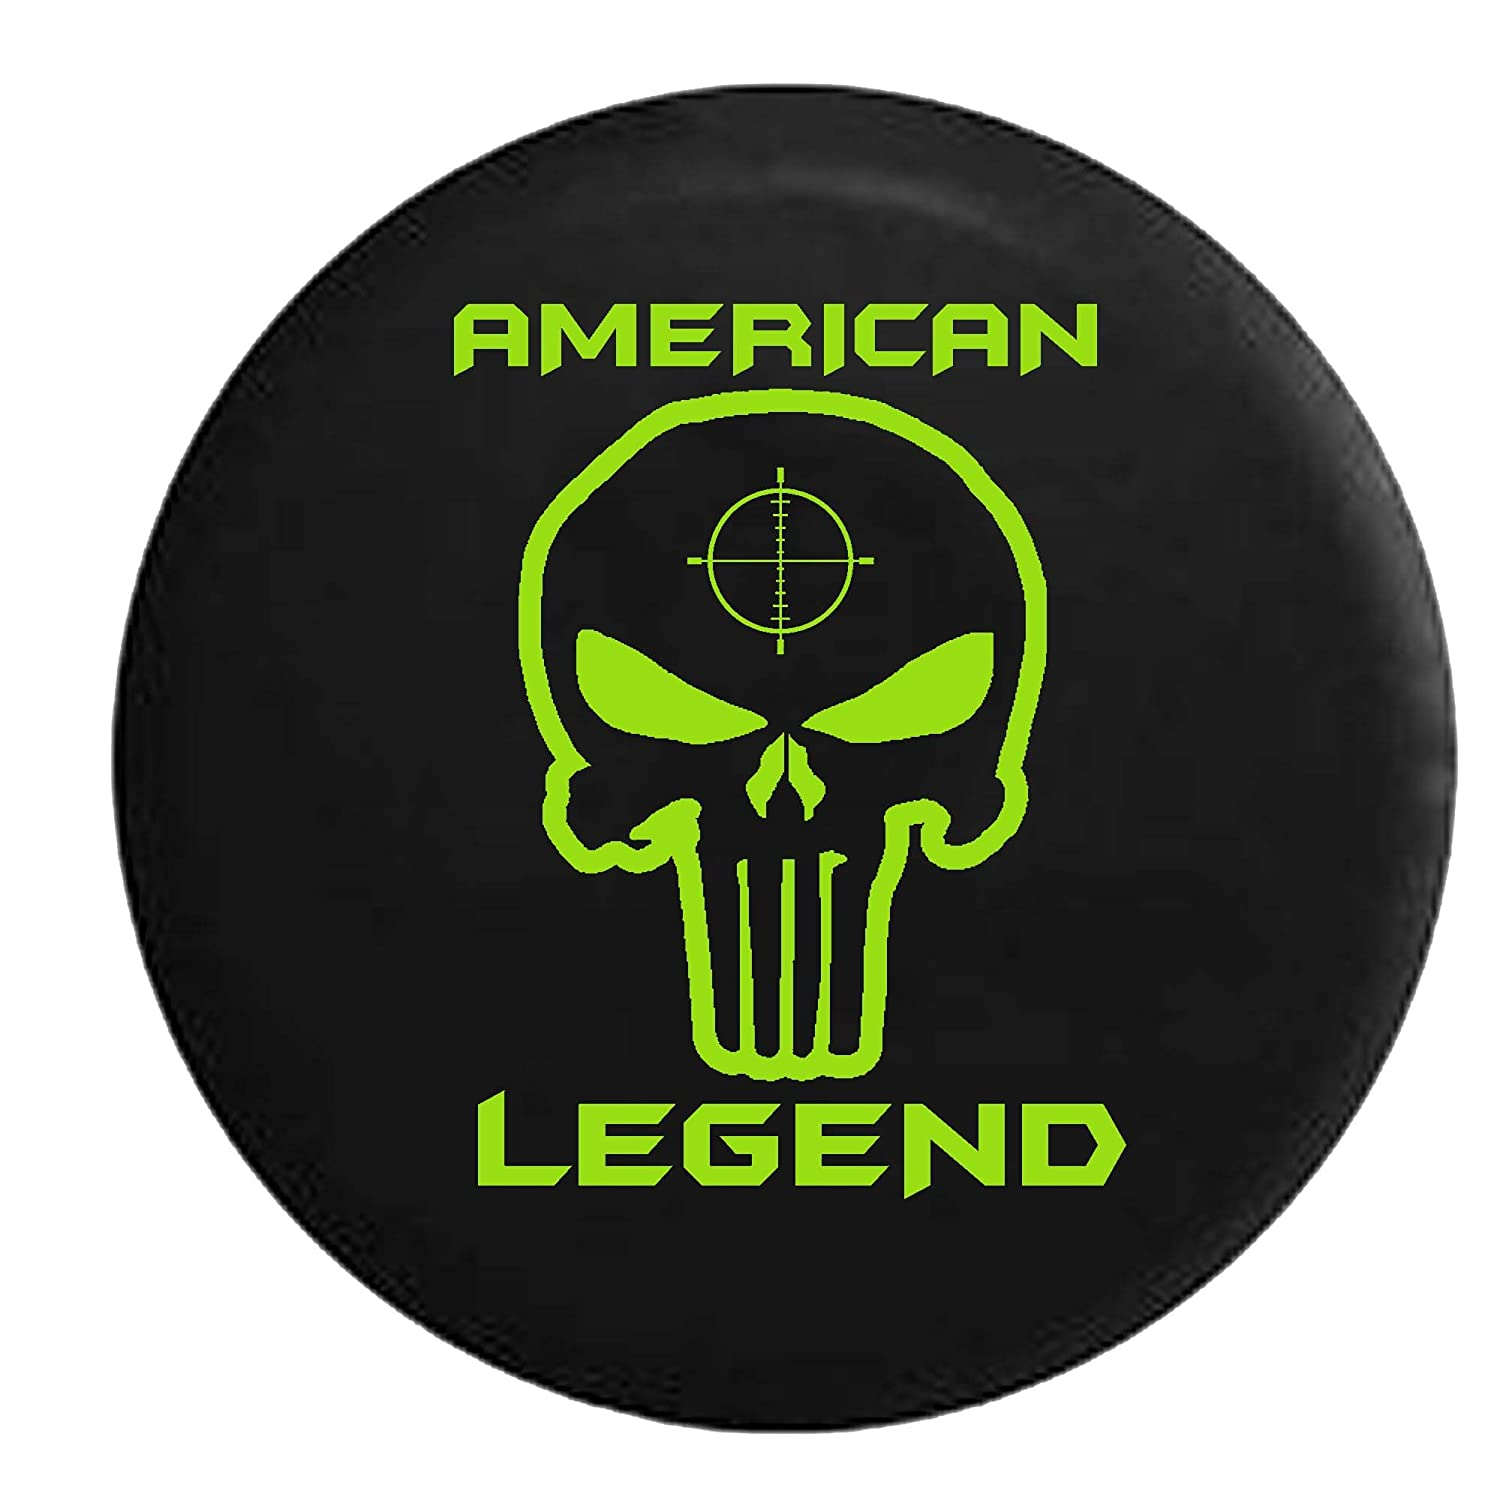 American Legend Spare Tire Cover Vinyl Black 33 in American Unlimited Lime